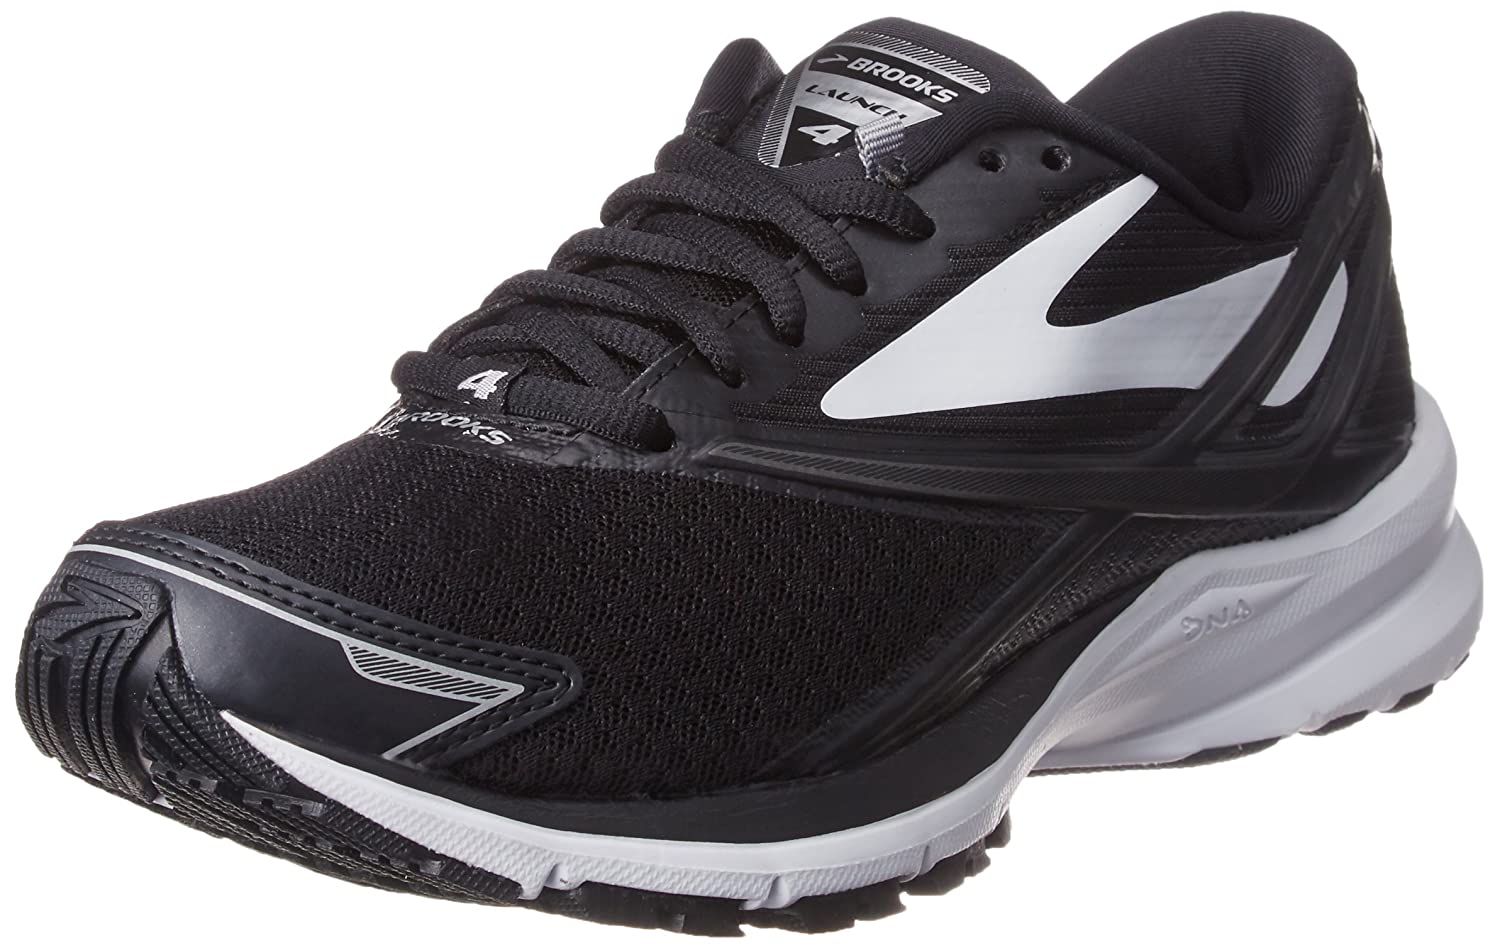 Black White Silver Brooks Women's Ghost 11 Running shoes